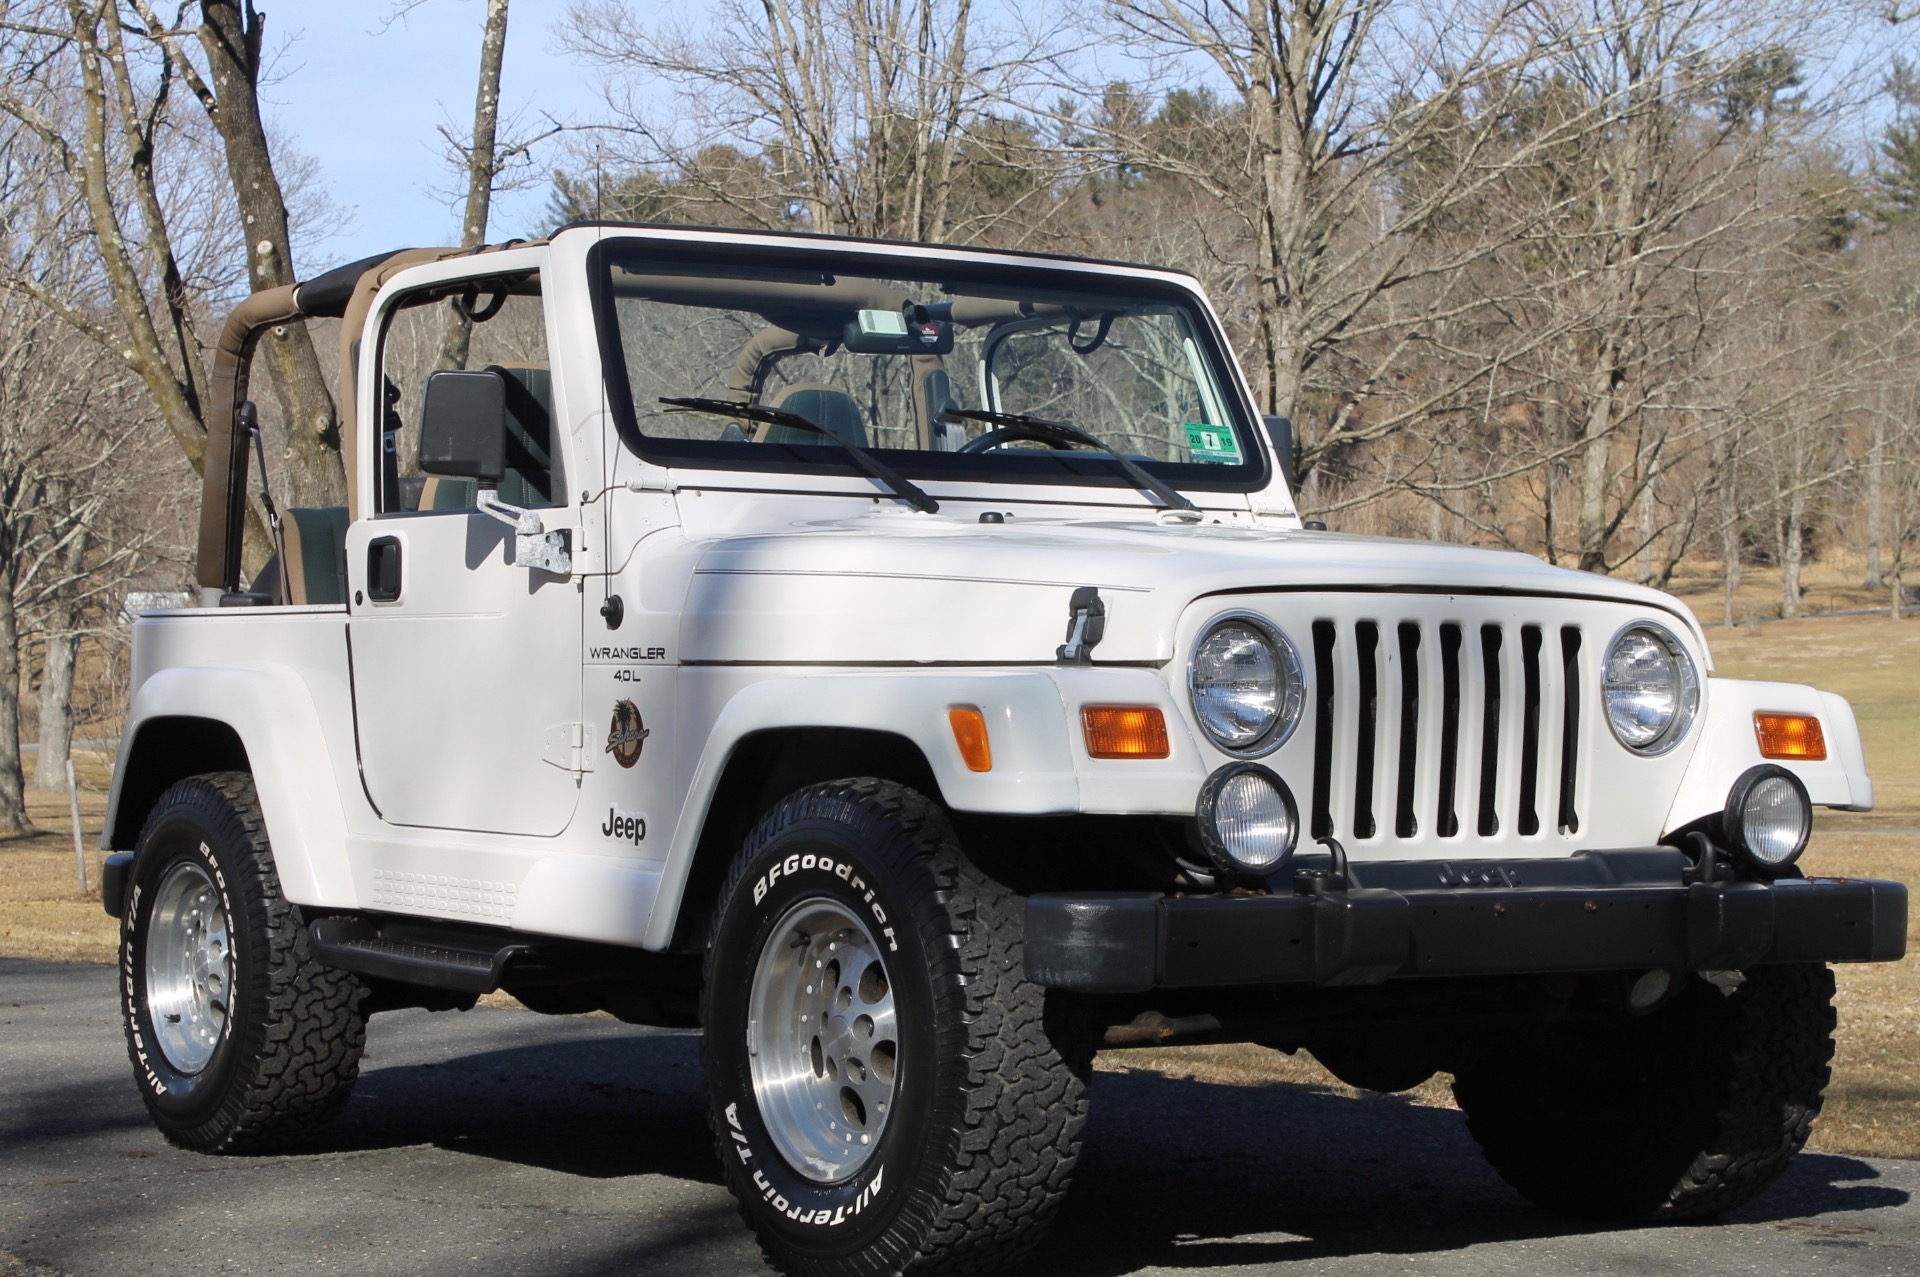 1999 Jeep Wrangler For Sale >> Used 1999 Jeep Wrangler Sahara For Sale 10 900 Legend Leasing